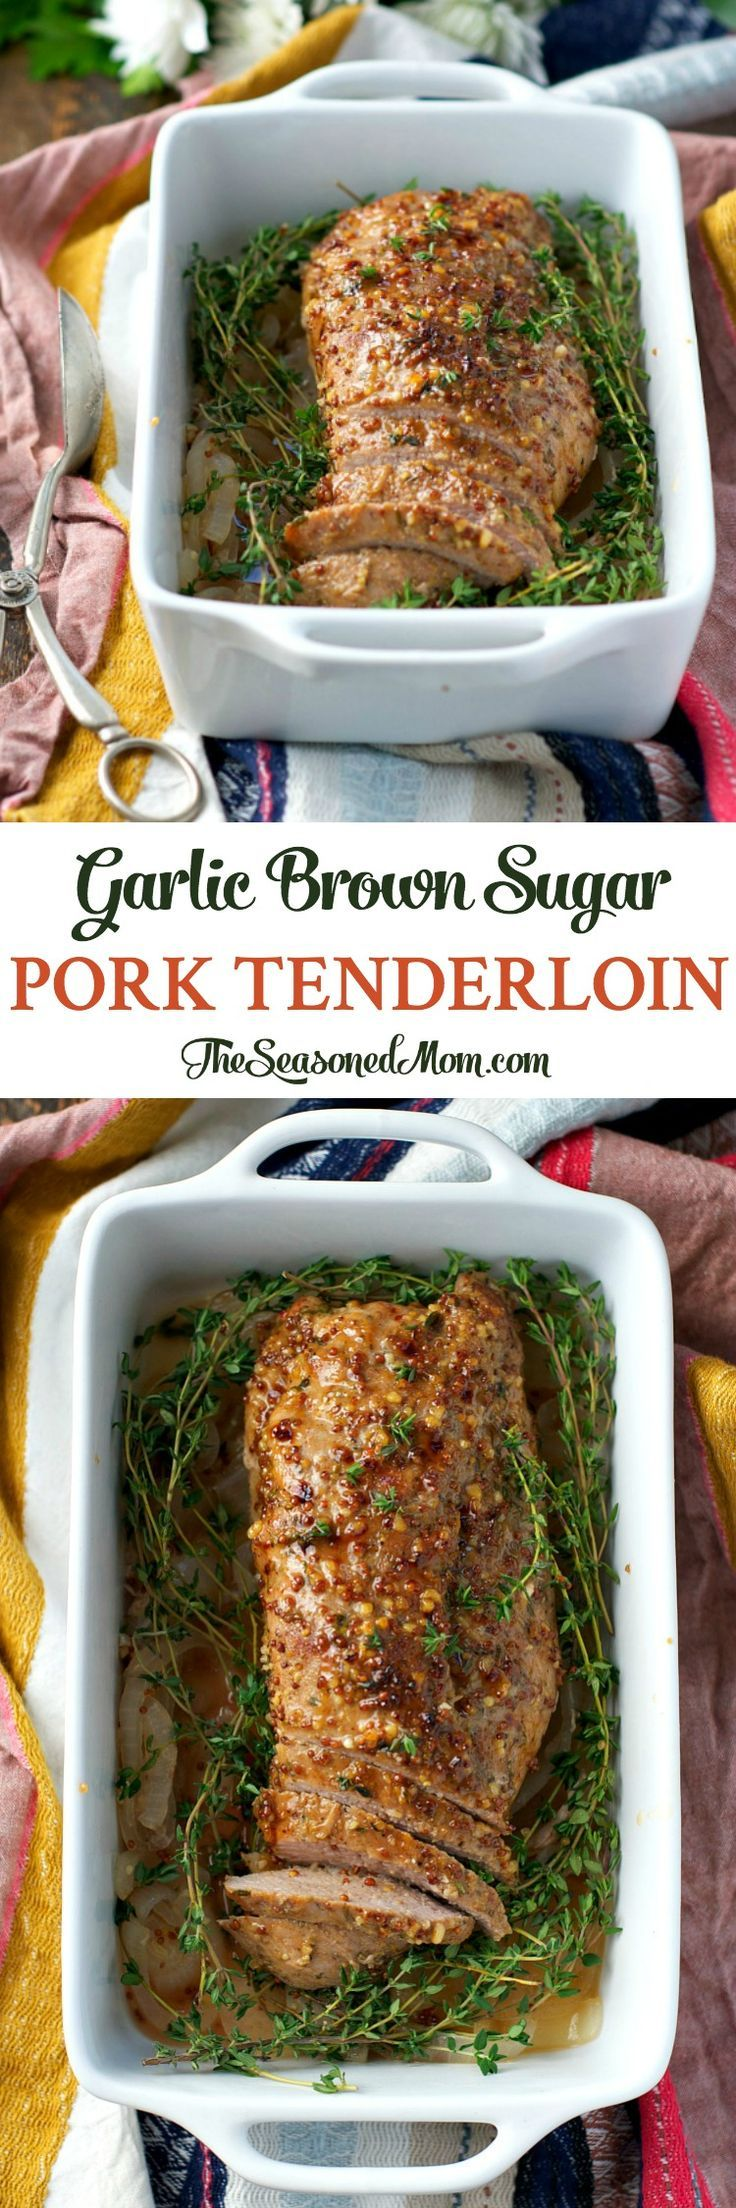 With just 10 minutes of prep, this Garlic Brown Sugar Pork Tenderloin is an easy dinner that's fancy enough for guests!